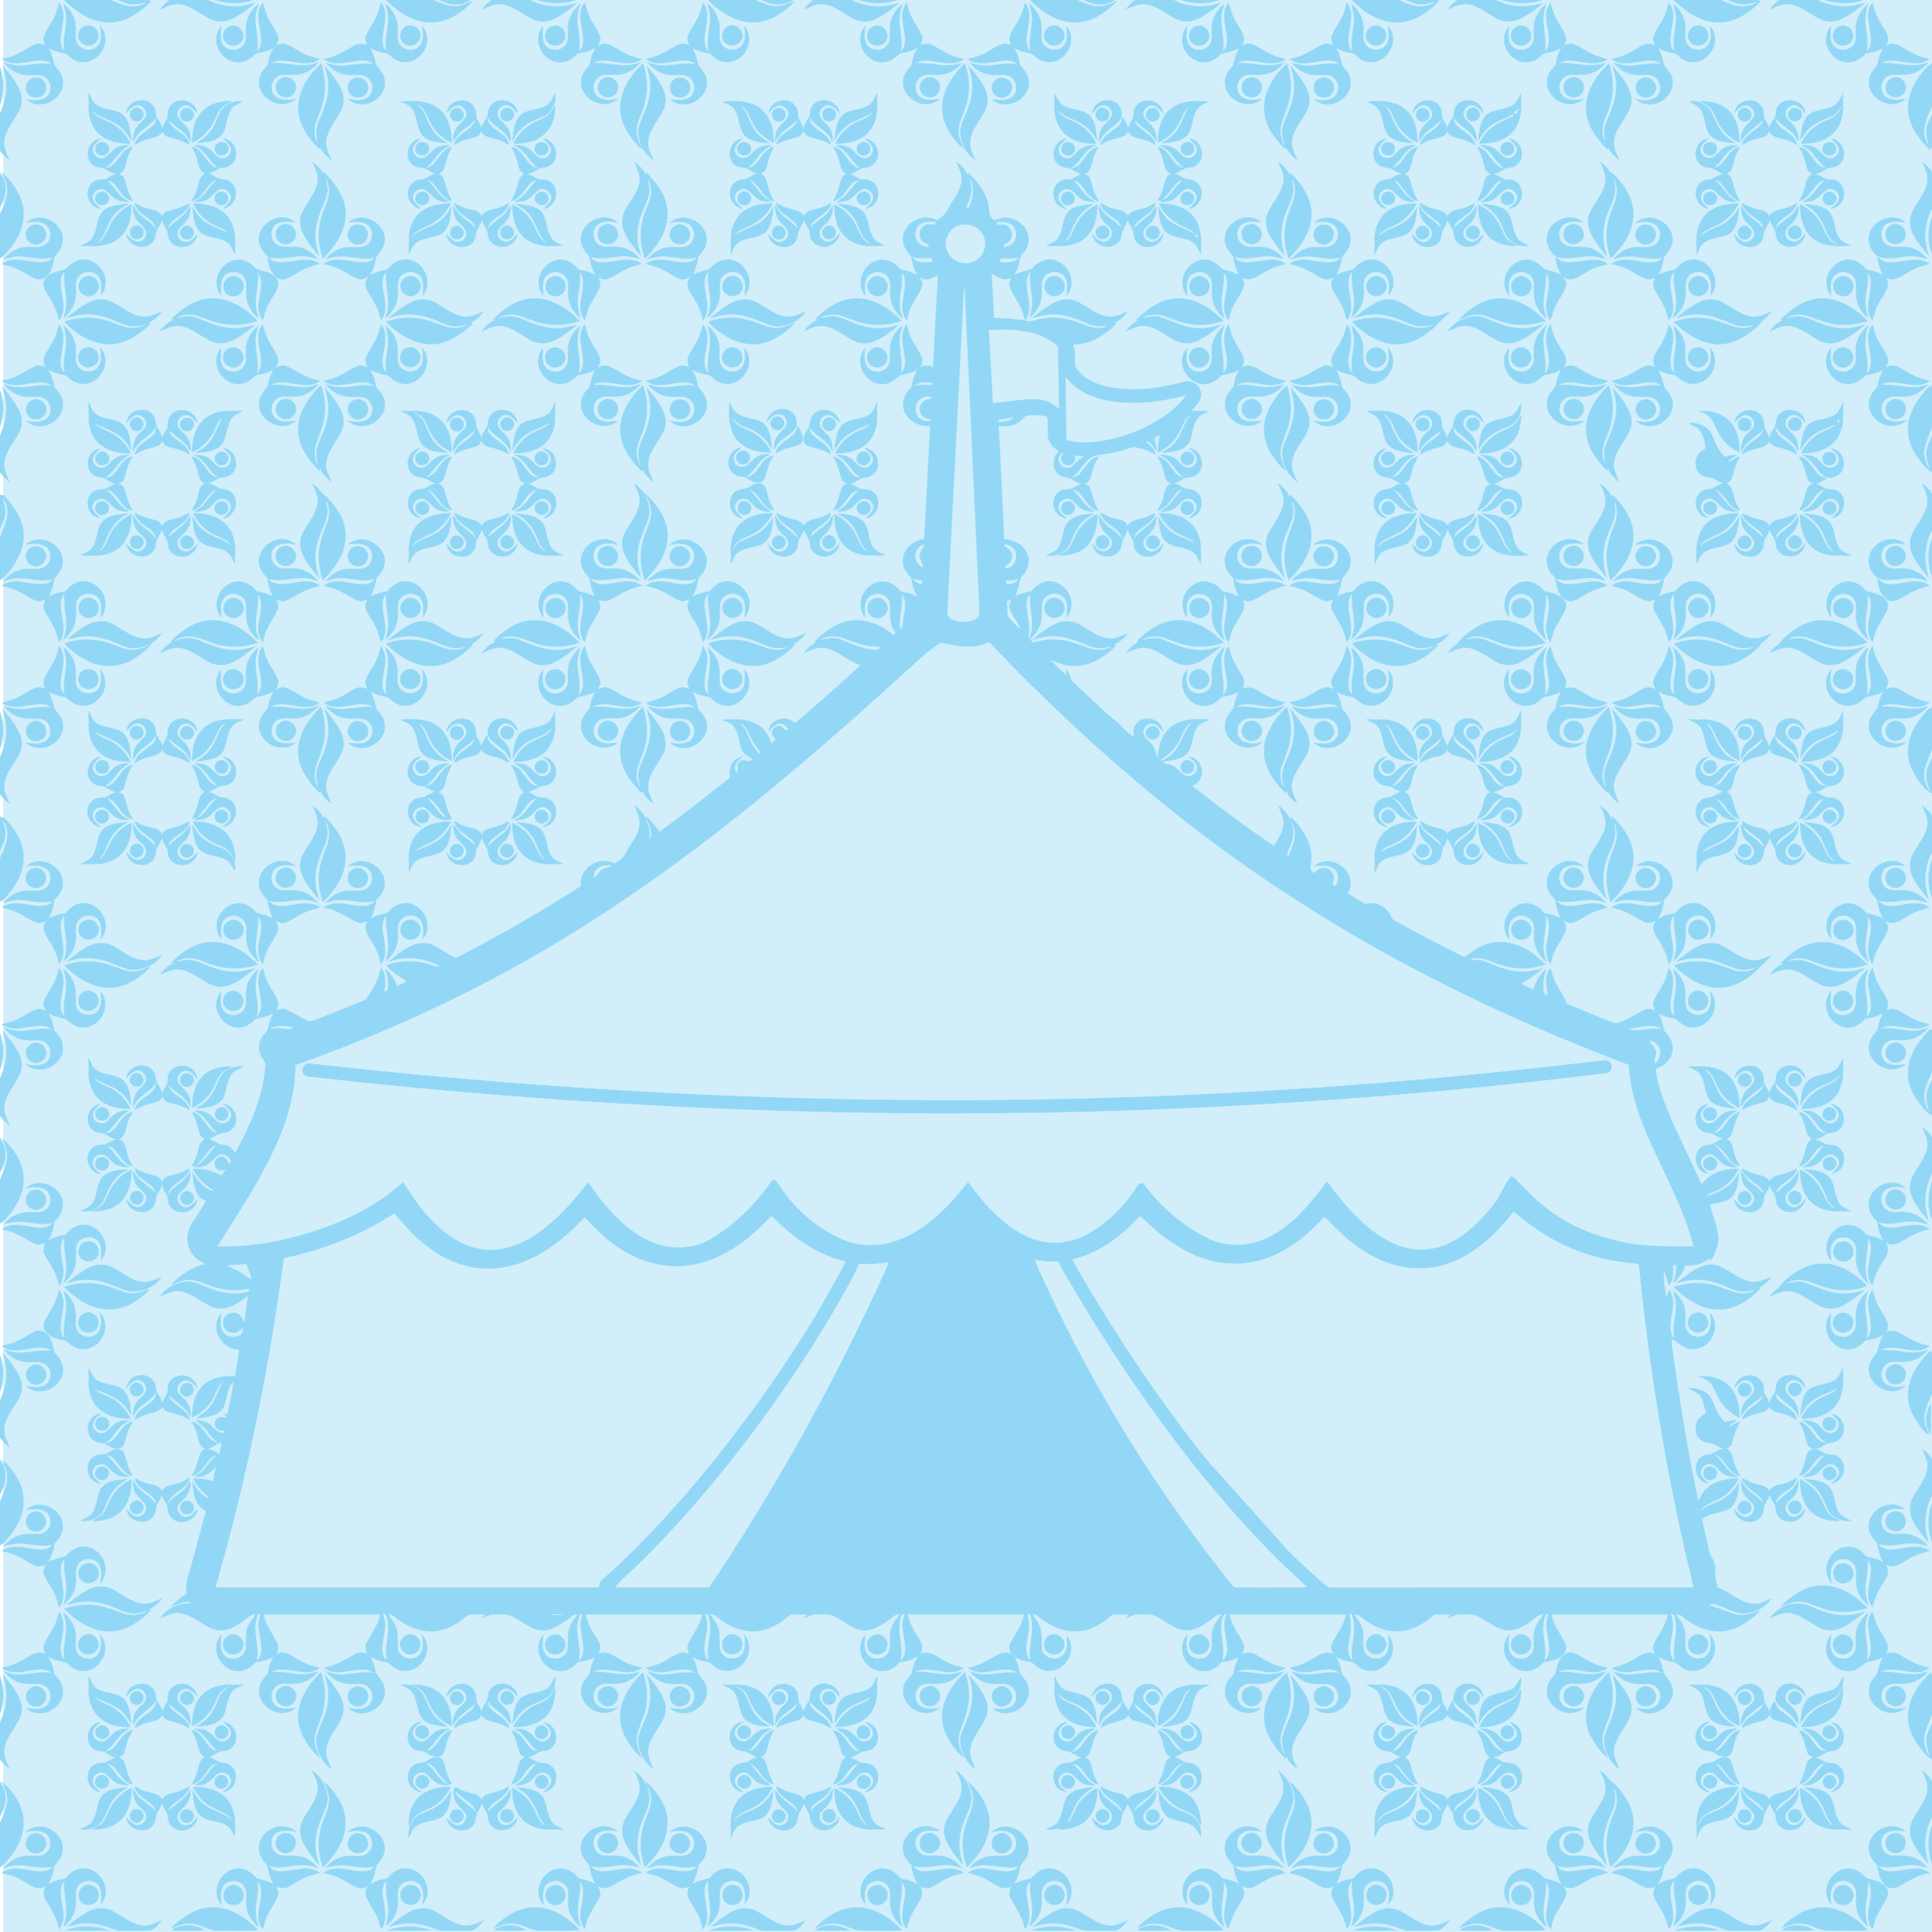 Blue Patterned Circus Tent by GDJ